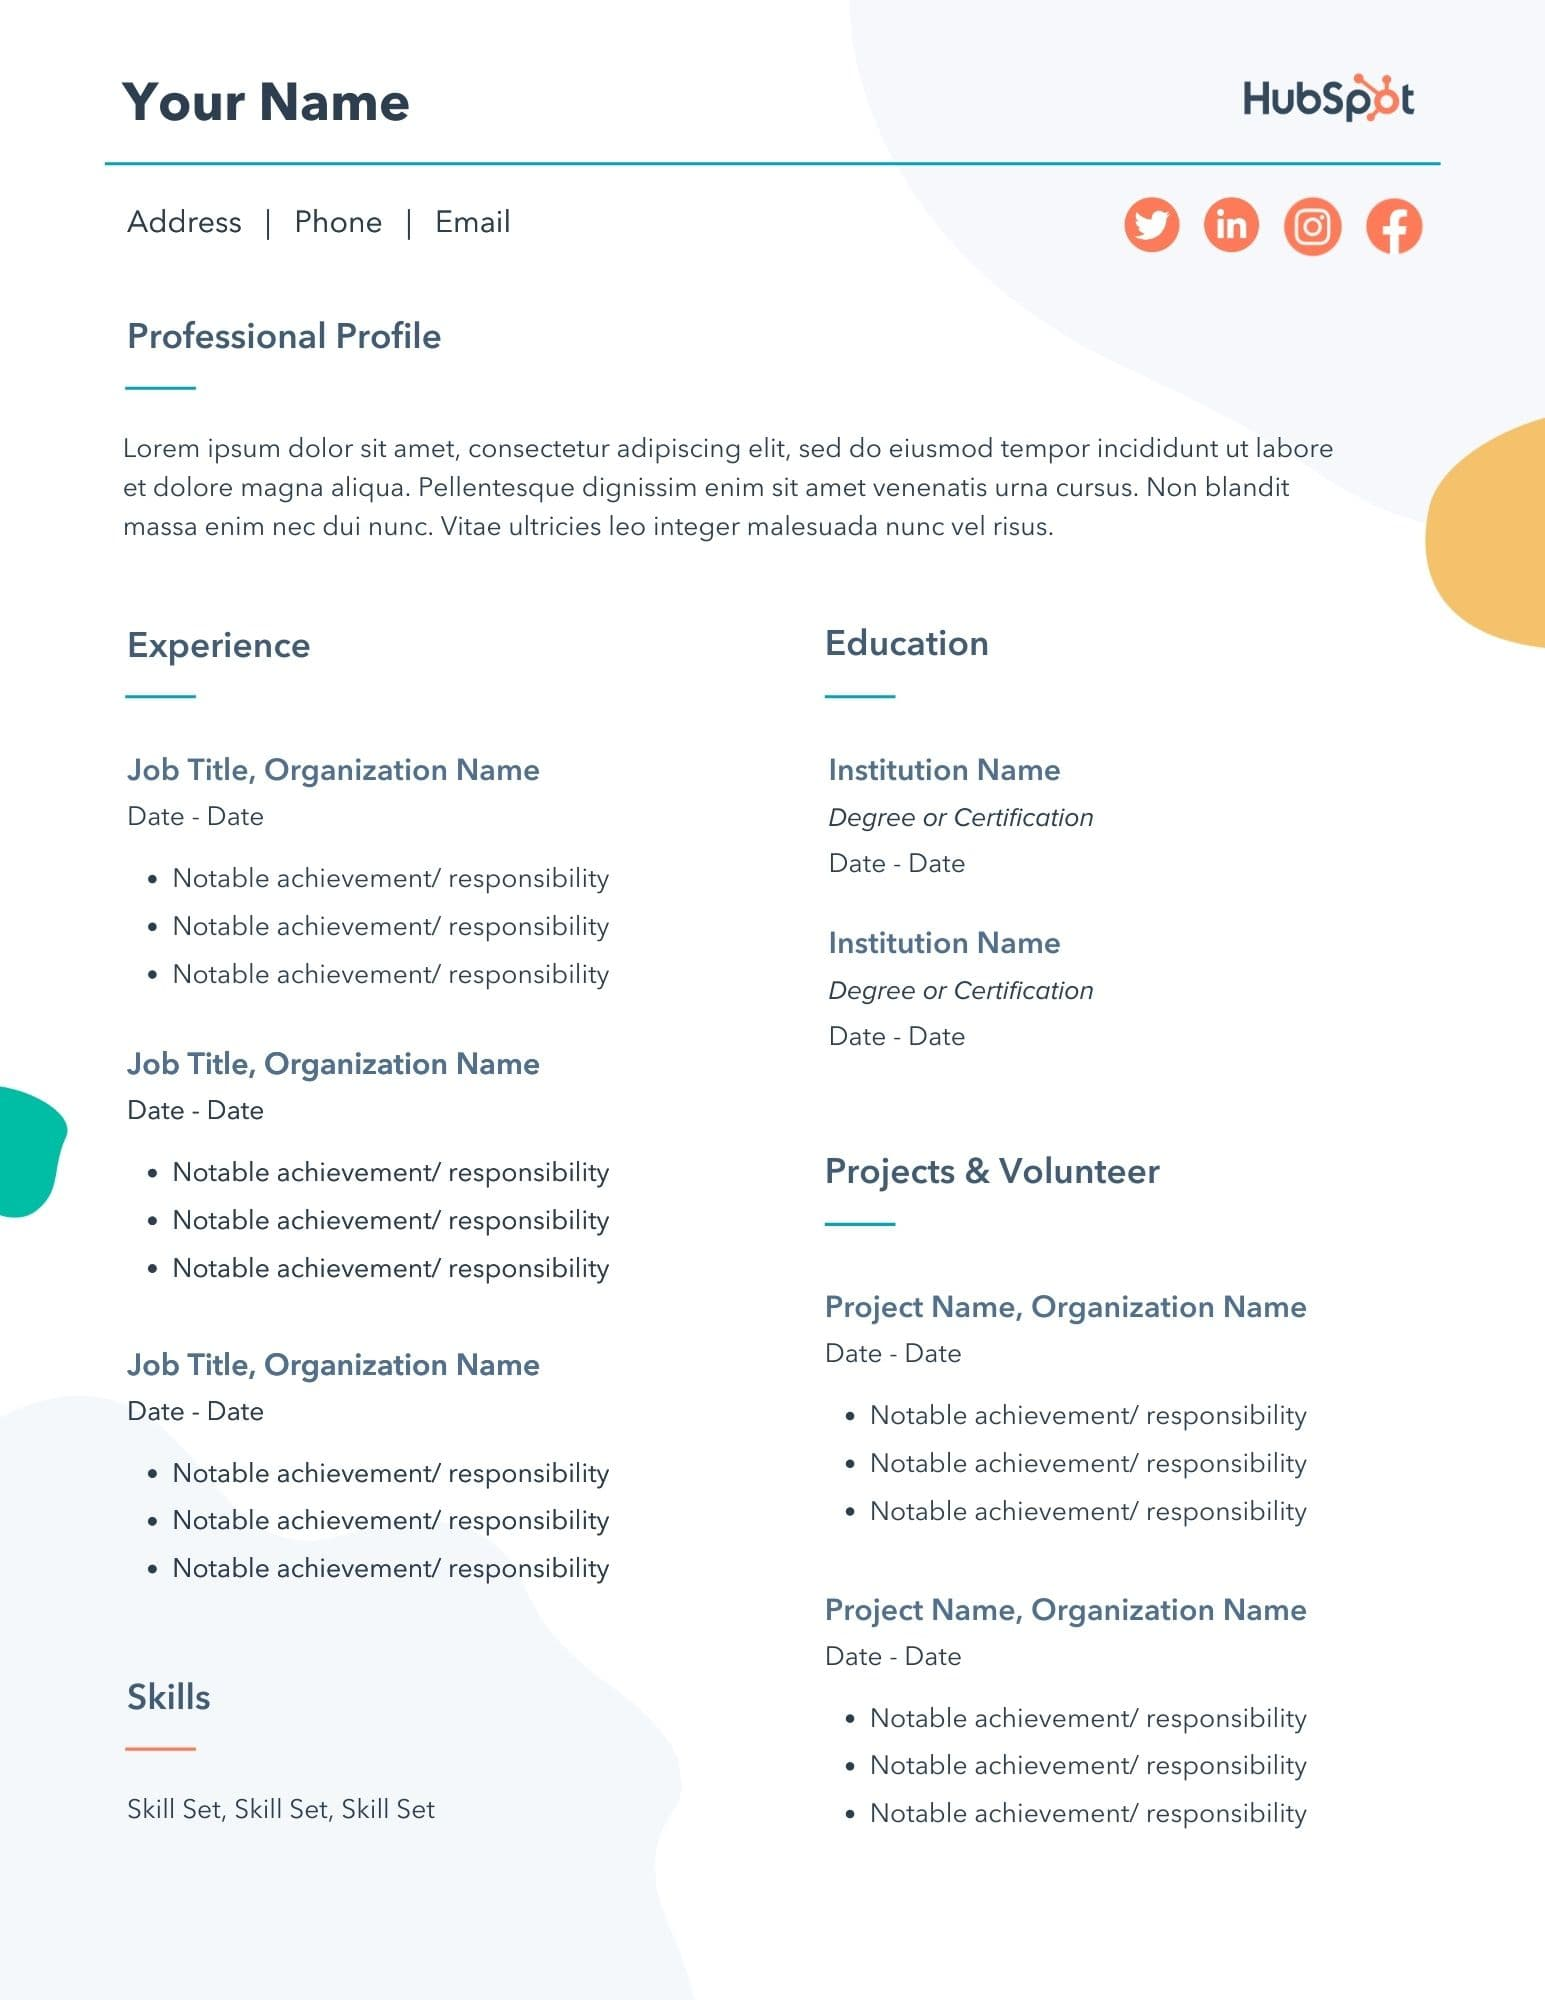 free resume templates for microsoft word to make your own best new template rabbit Resume Best New Resume Templates